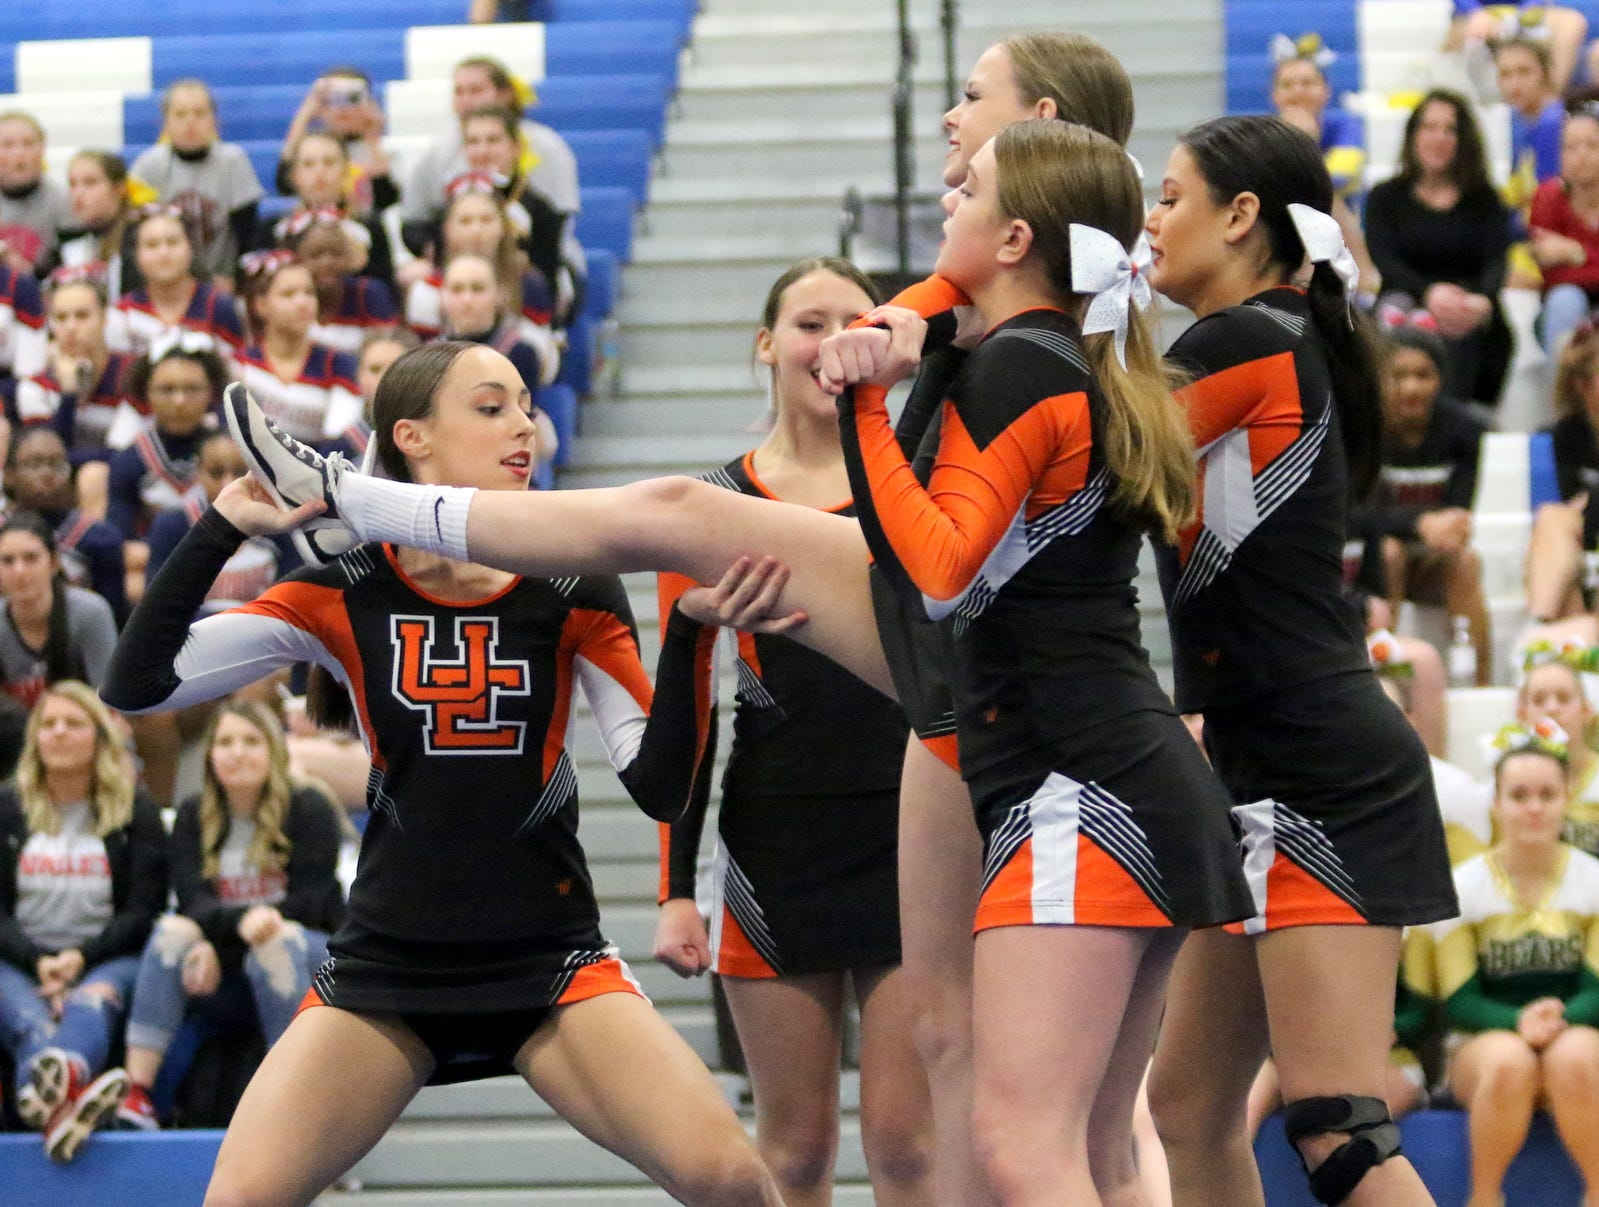 Union-Endicott junior varsity cheerleaders compete at the STAC Winter Cheer Championships on Feb. 16, 2019 at Horseheads Middle School.